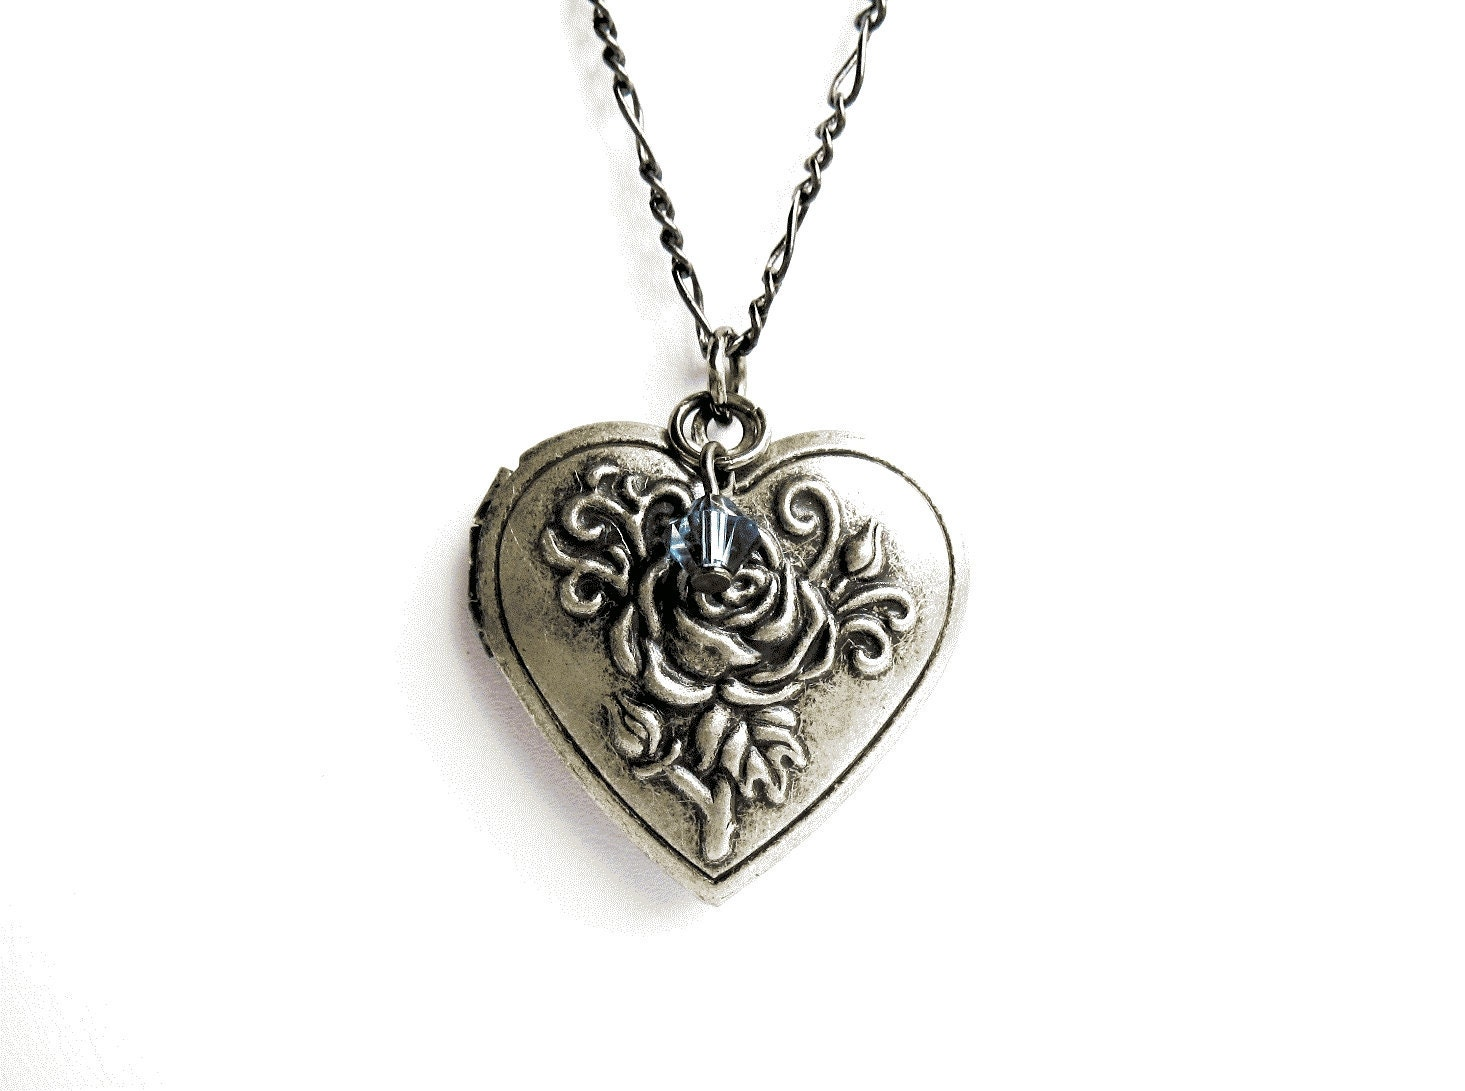 Heart Locket Necklace Antique Silver Heart Locket With Rose